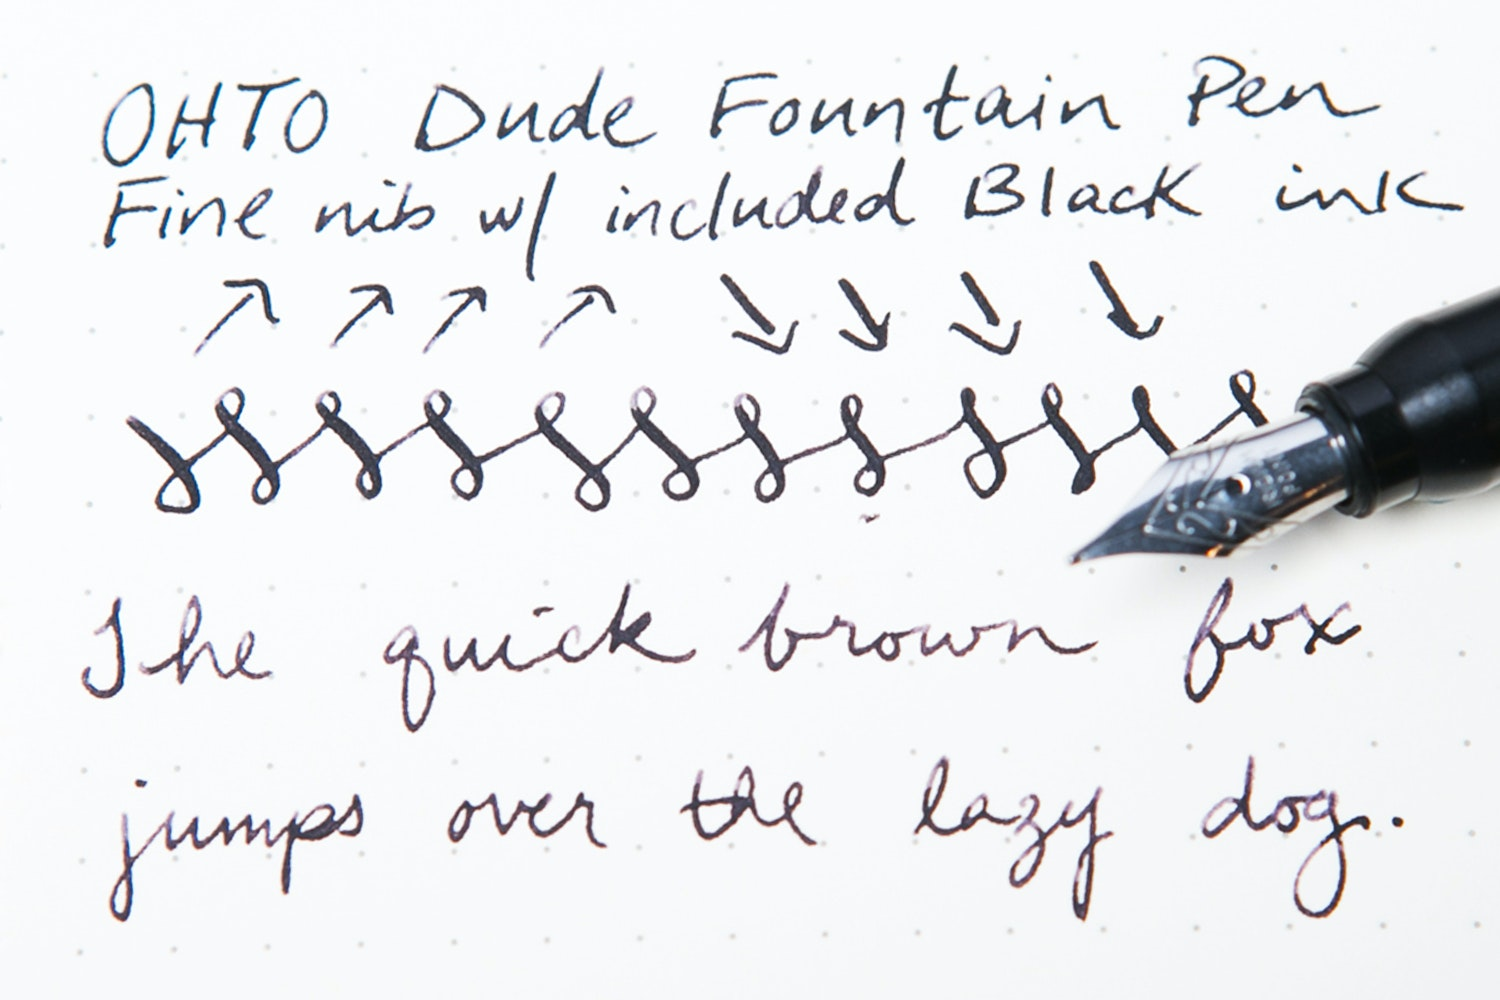 OHTO Dude Fountain Pen (2-Pack)